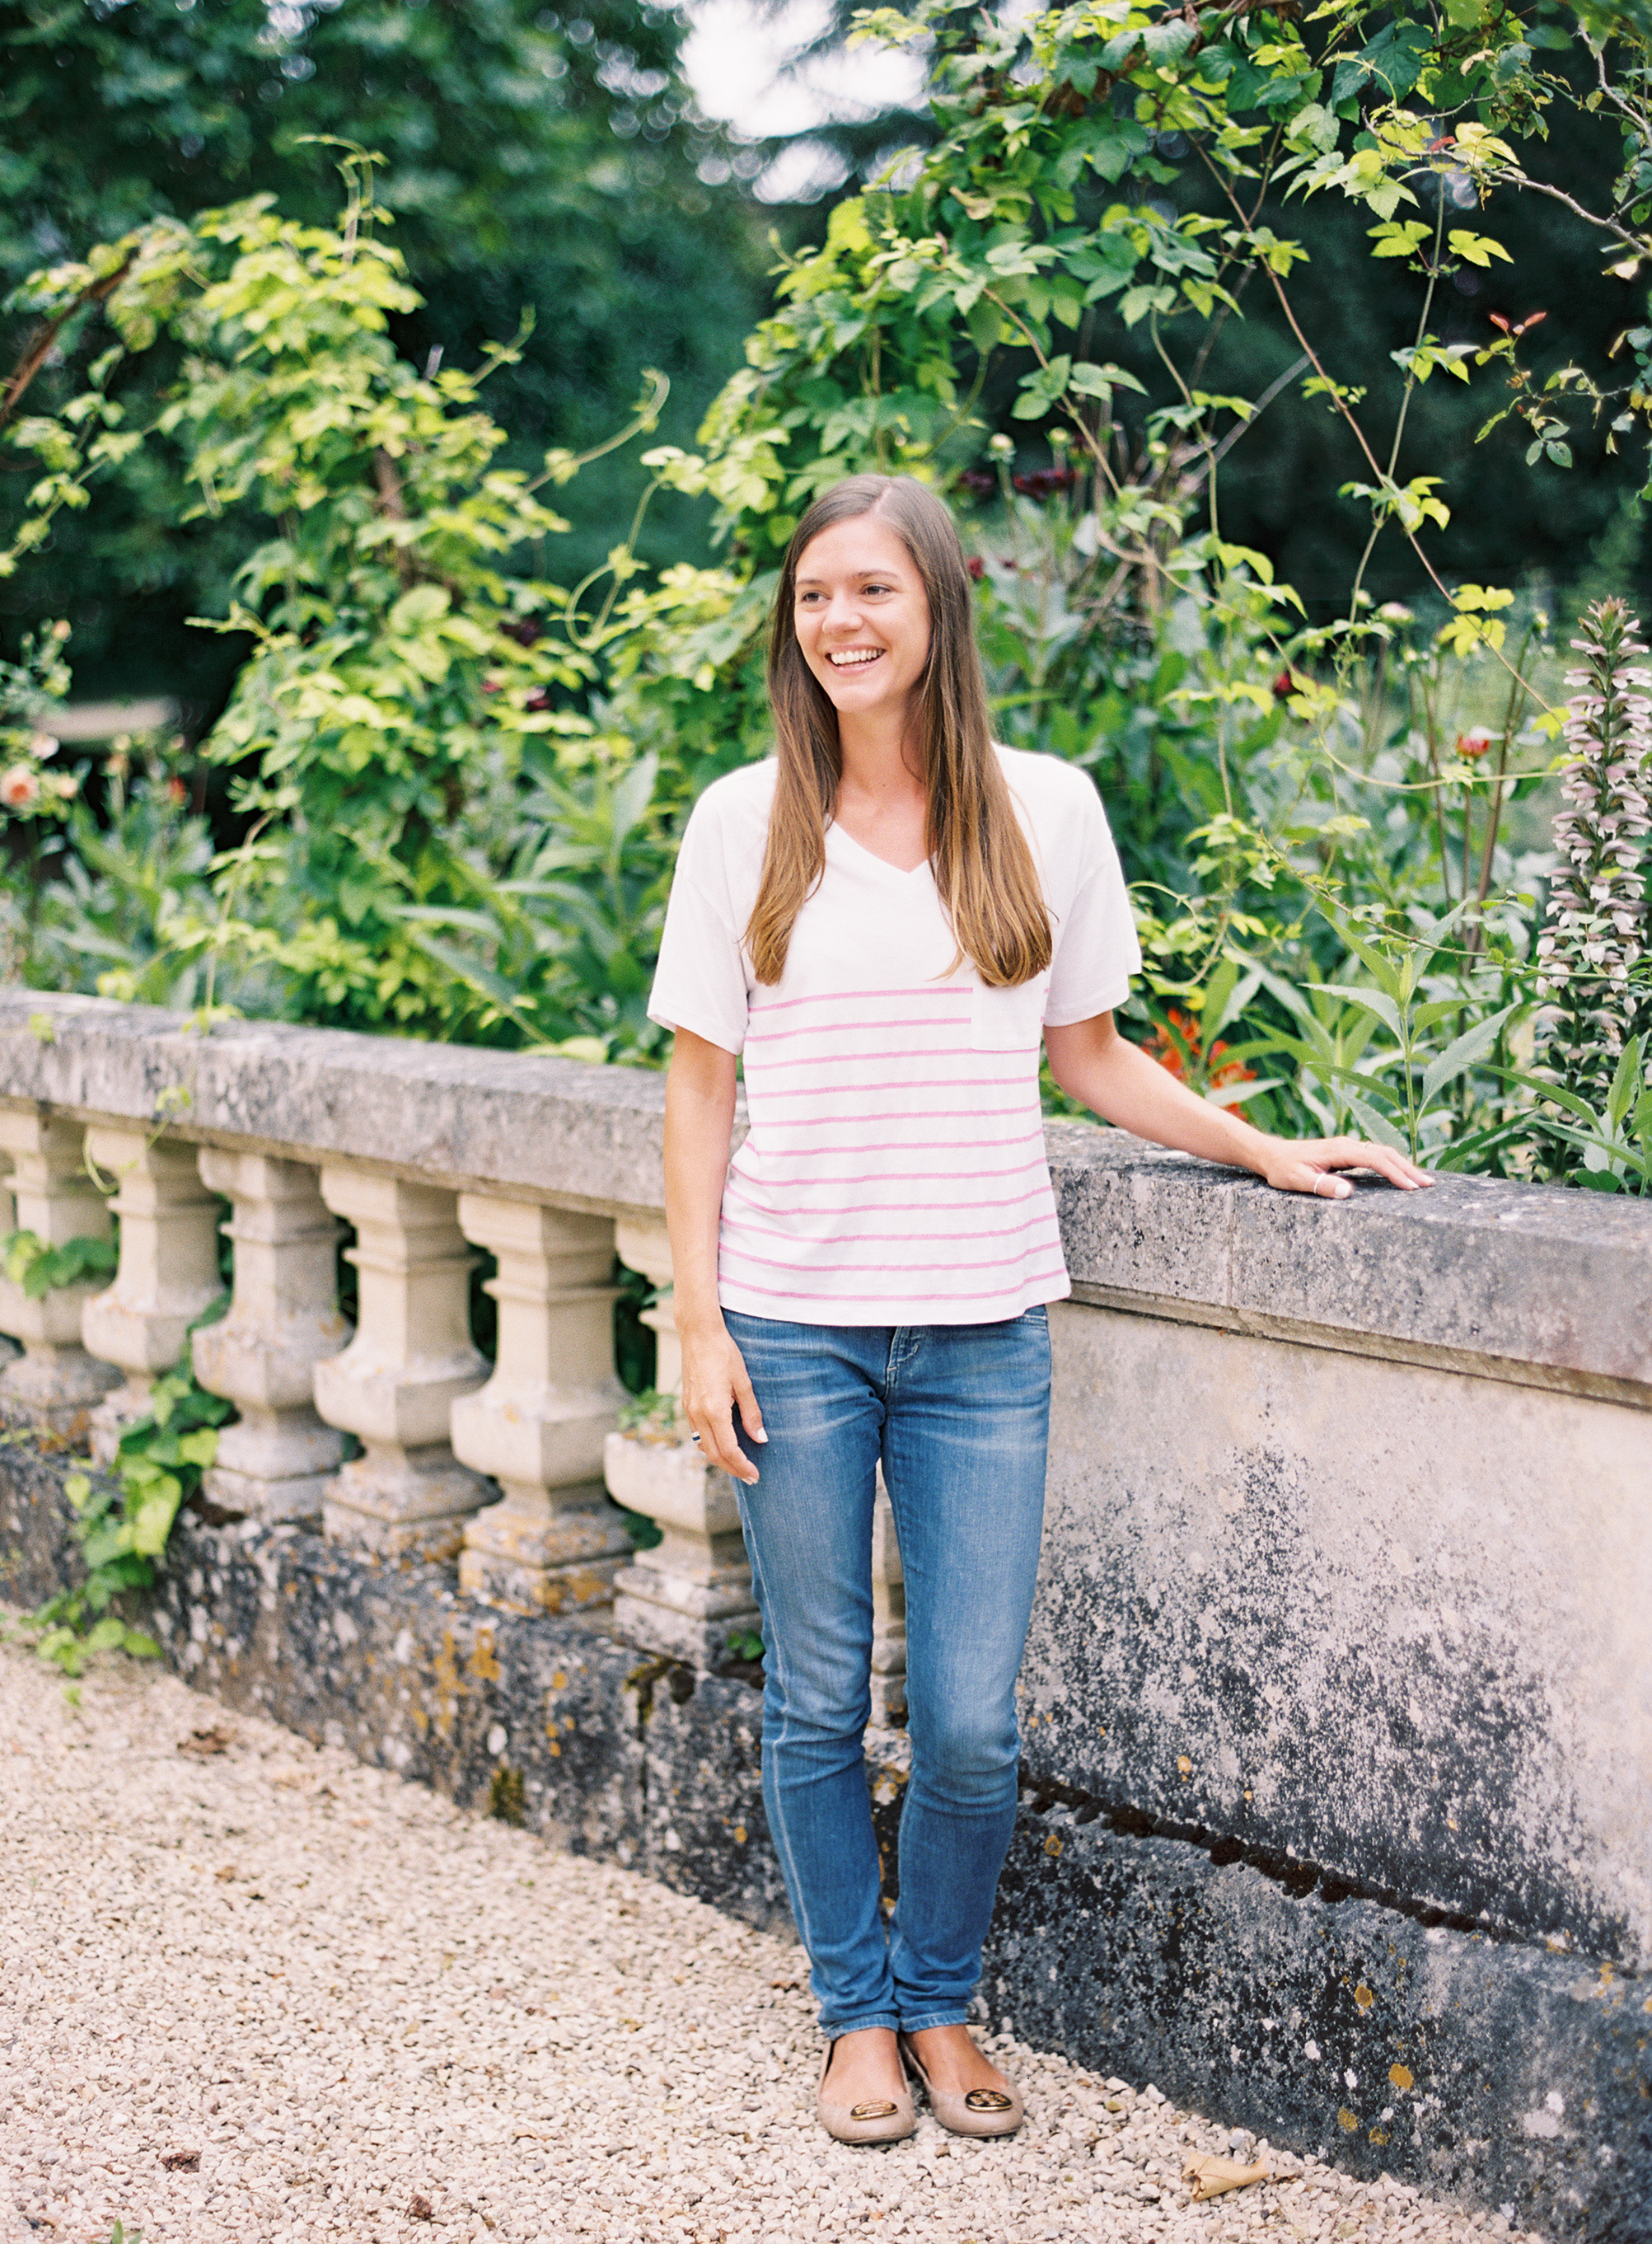 Lucy Davenport at Aynhoe Park